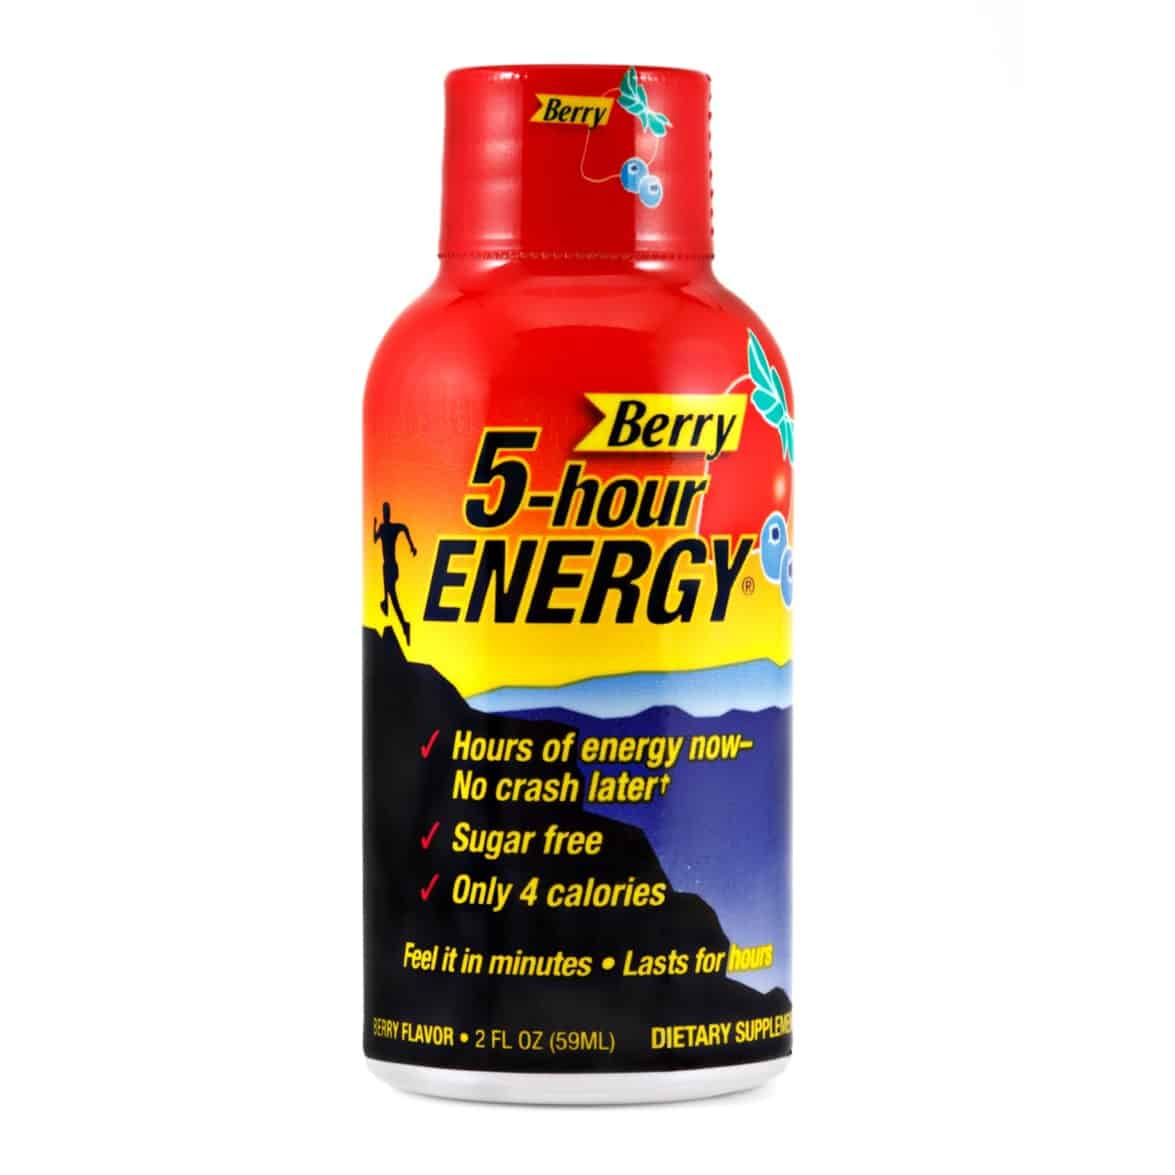 5-hour Energy Review, 5-Hour Energy, Brain Pill Reviews, Best and most honest reviews